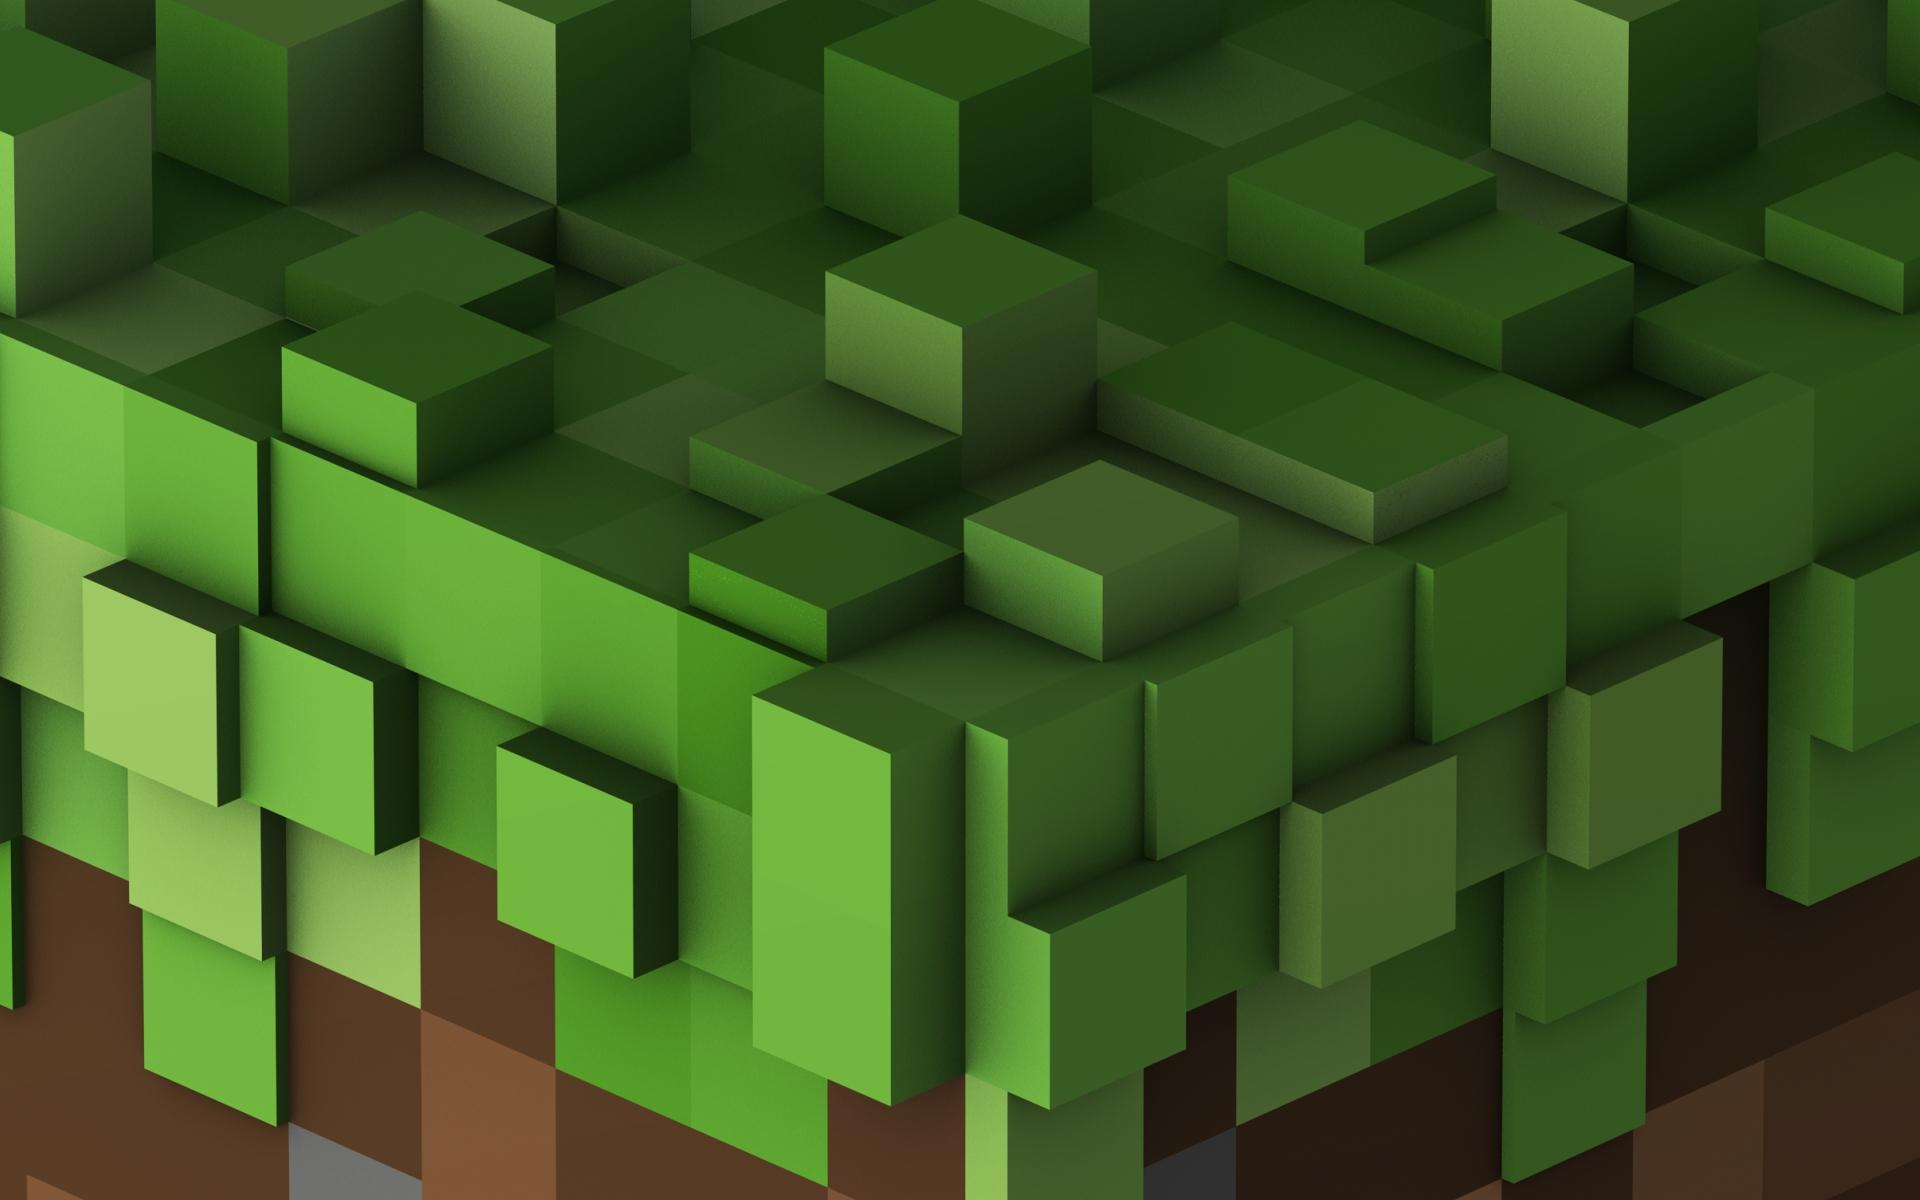 Minecraft grass block clipart picture freeuse Chameleon Changing Color Gif - wallpaper. picture freeuse